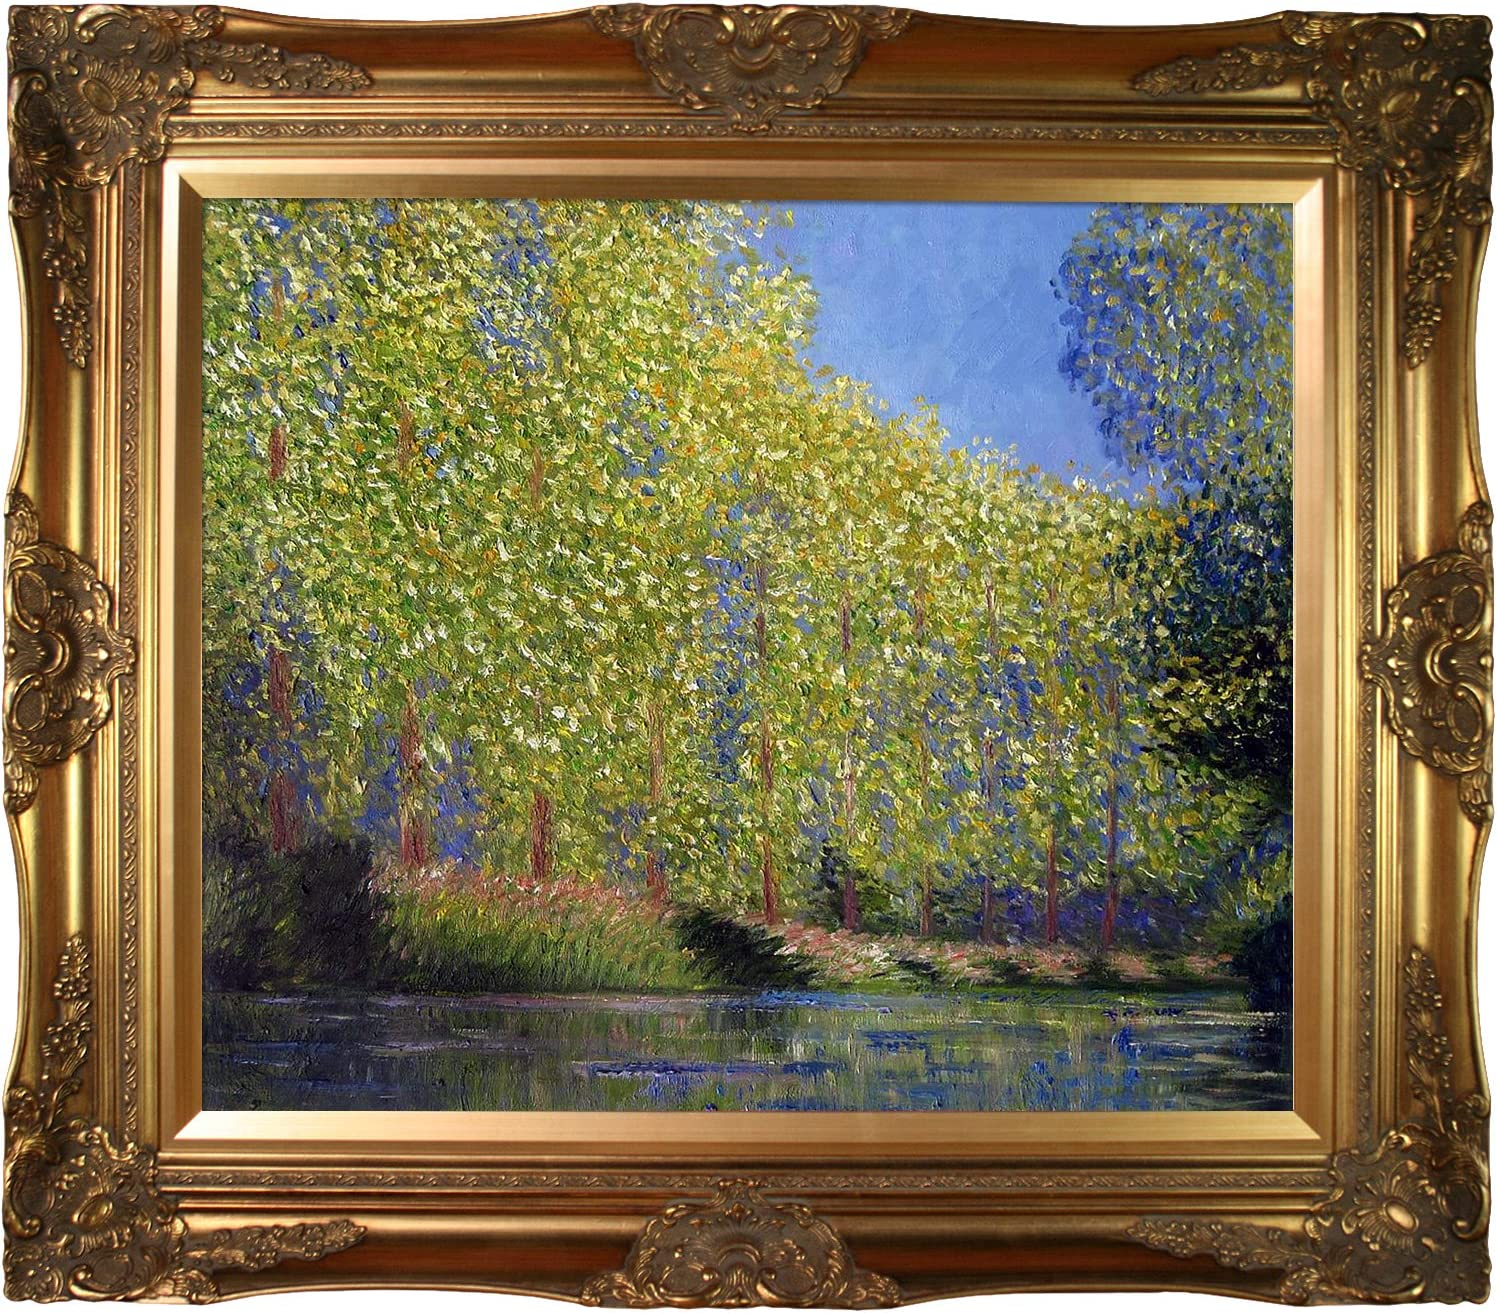 La Pastiche overstockArt Chicago Mall Bend in Free shipping on posting reviews The River Claude Monet Epte by